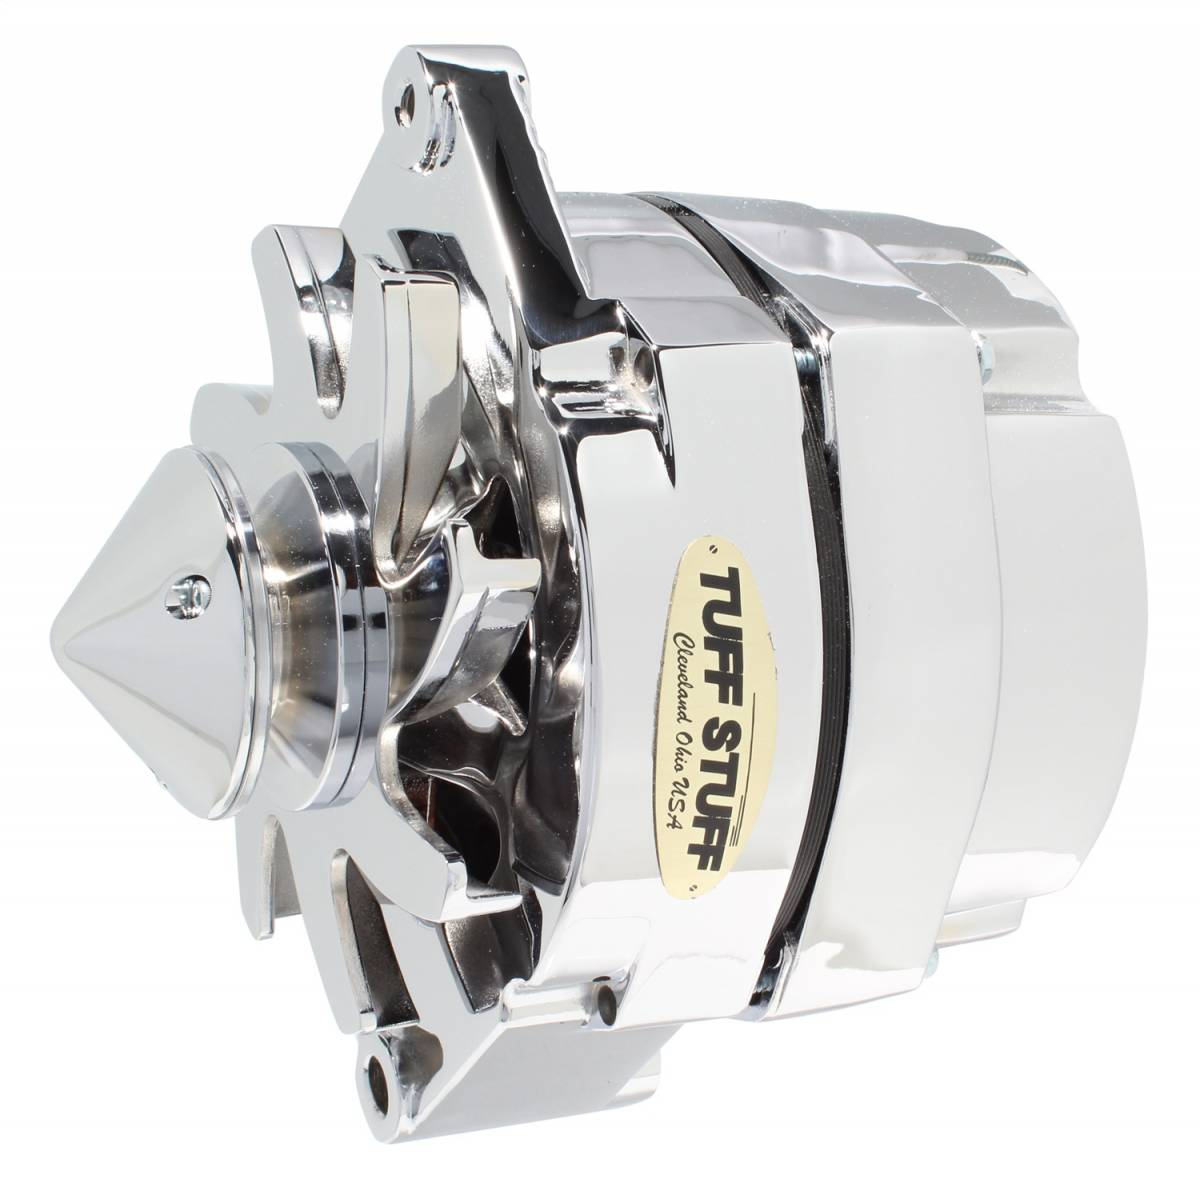 Tuff Stuff Performance - Silver Bullet Alternator 140 AMP OEM Or 1 Wire V Groove Bullet Pulley 4.85 in. Case Depth Lower Mount Boss 2 in. Long Polished 6 Clocking 7140BBULL6